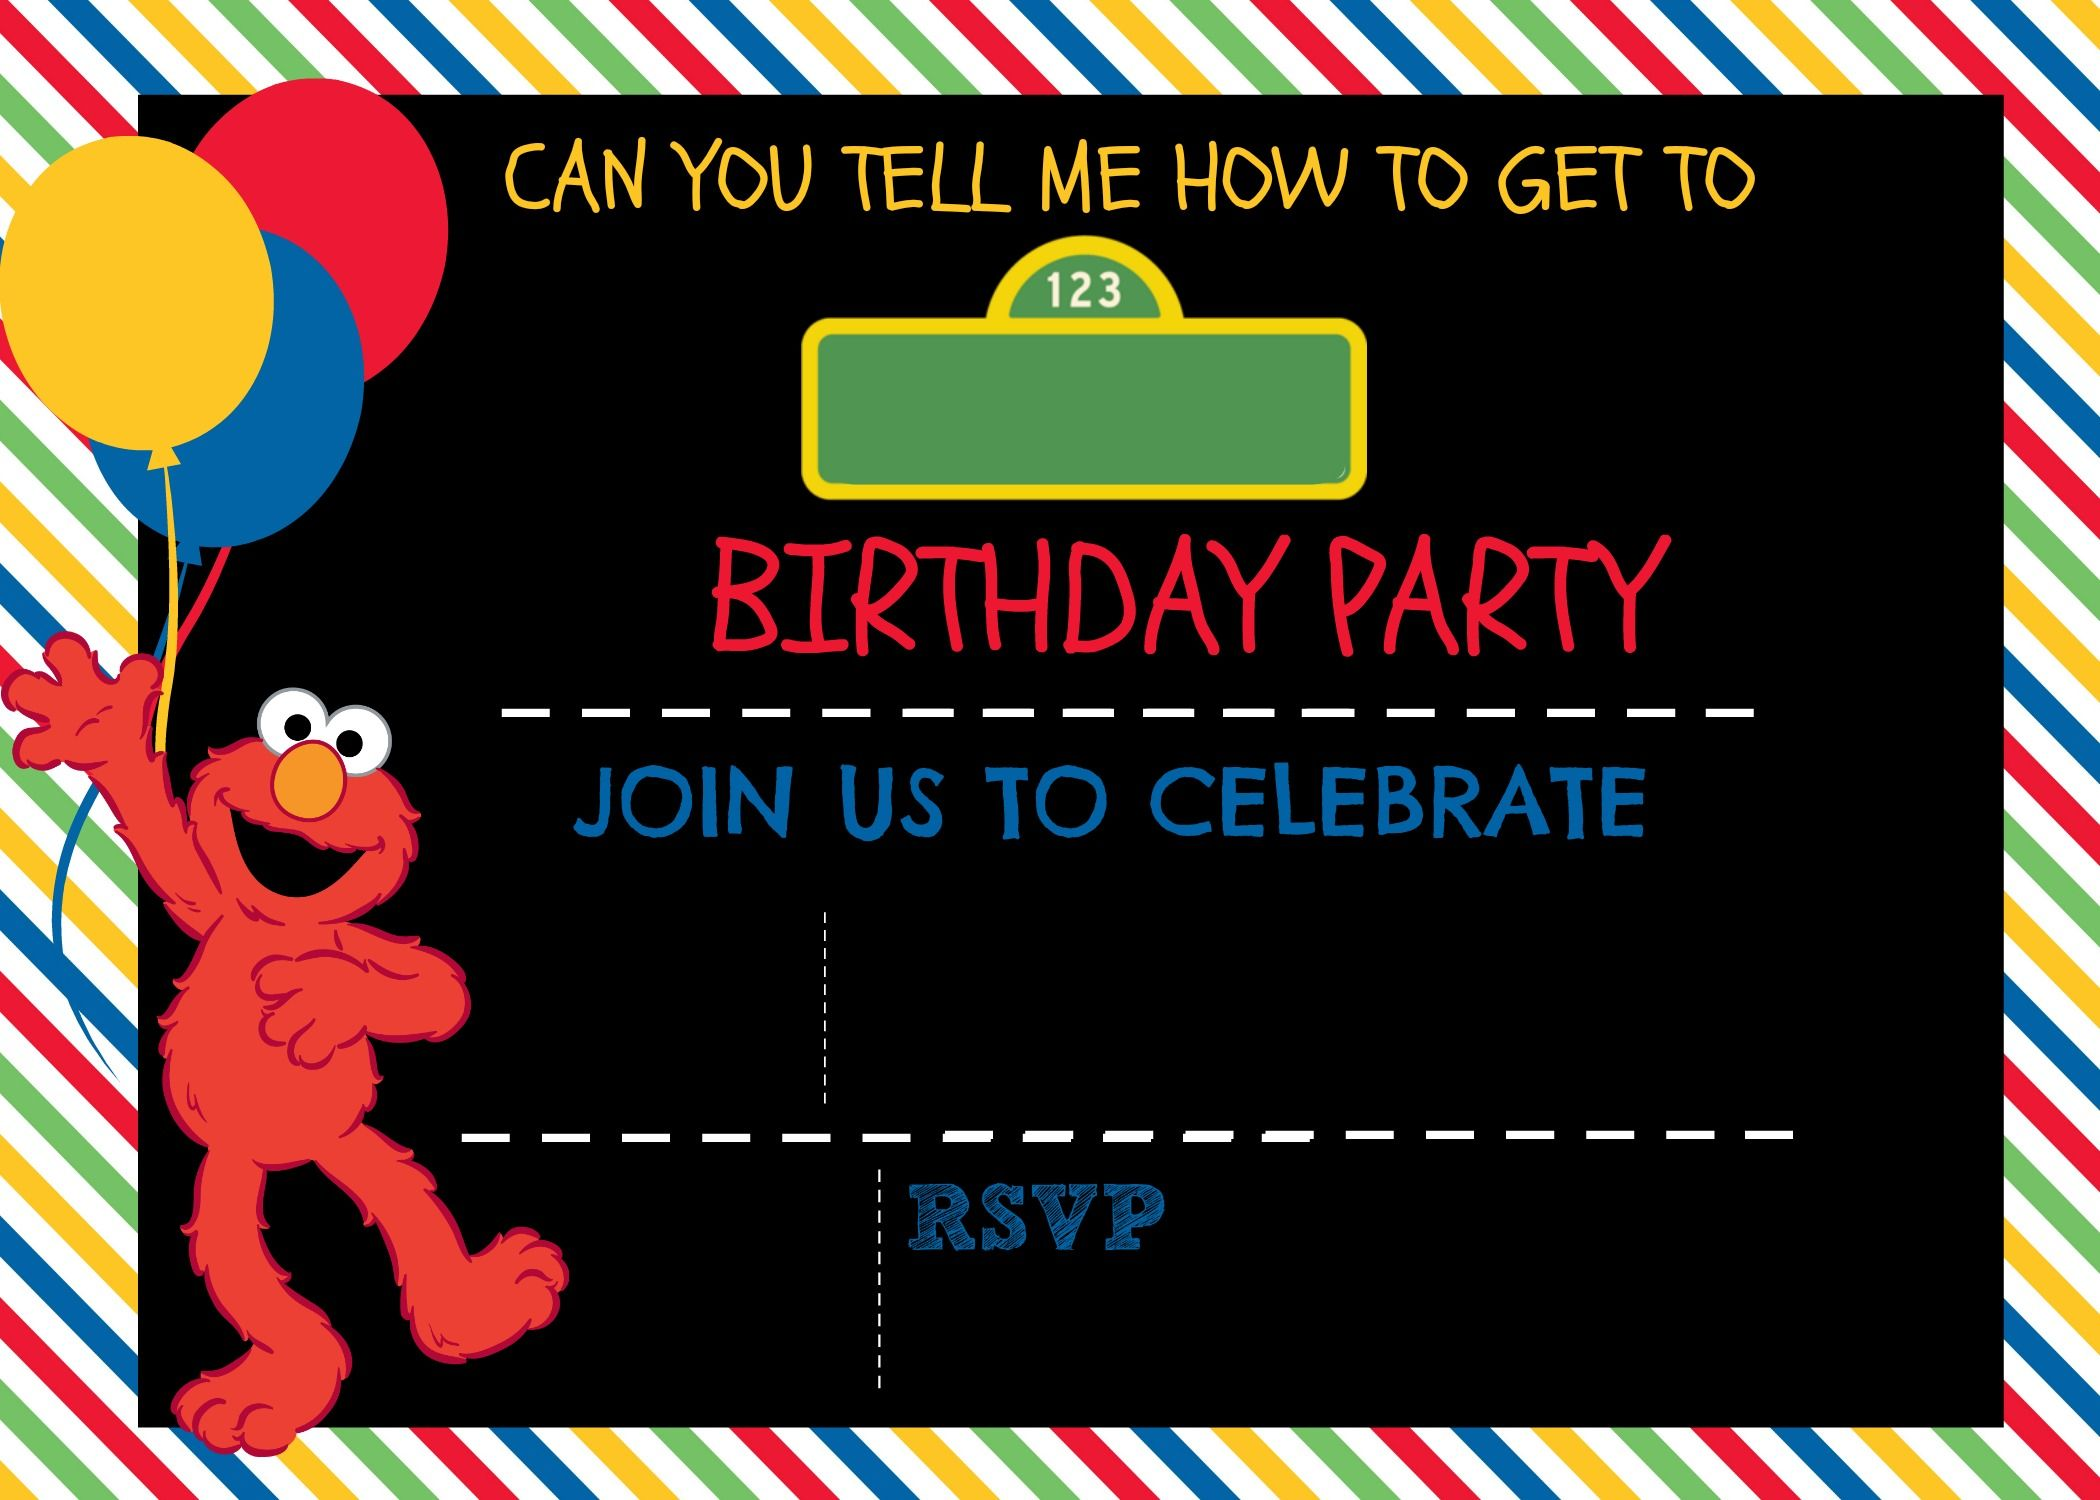 Learn how to make your own DIY Sesame street Digital Invitation